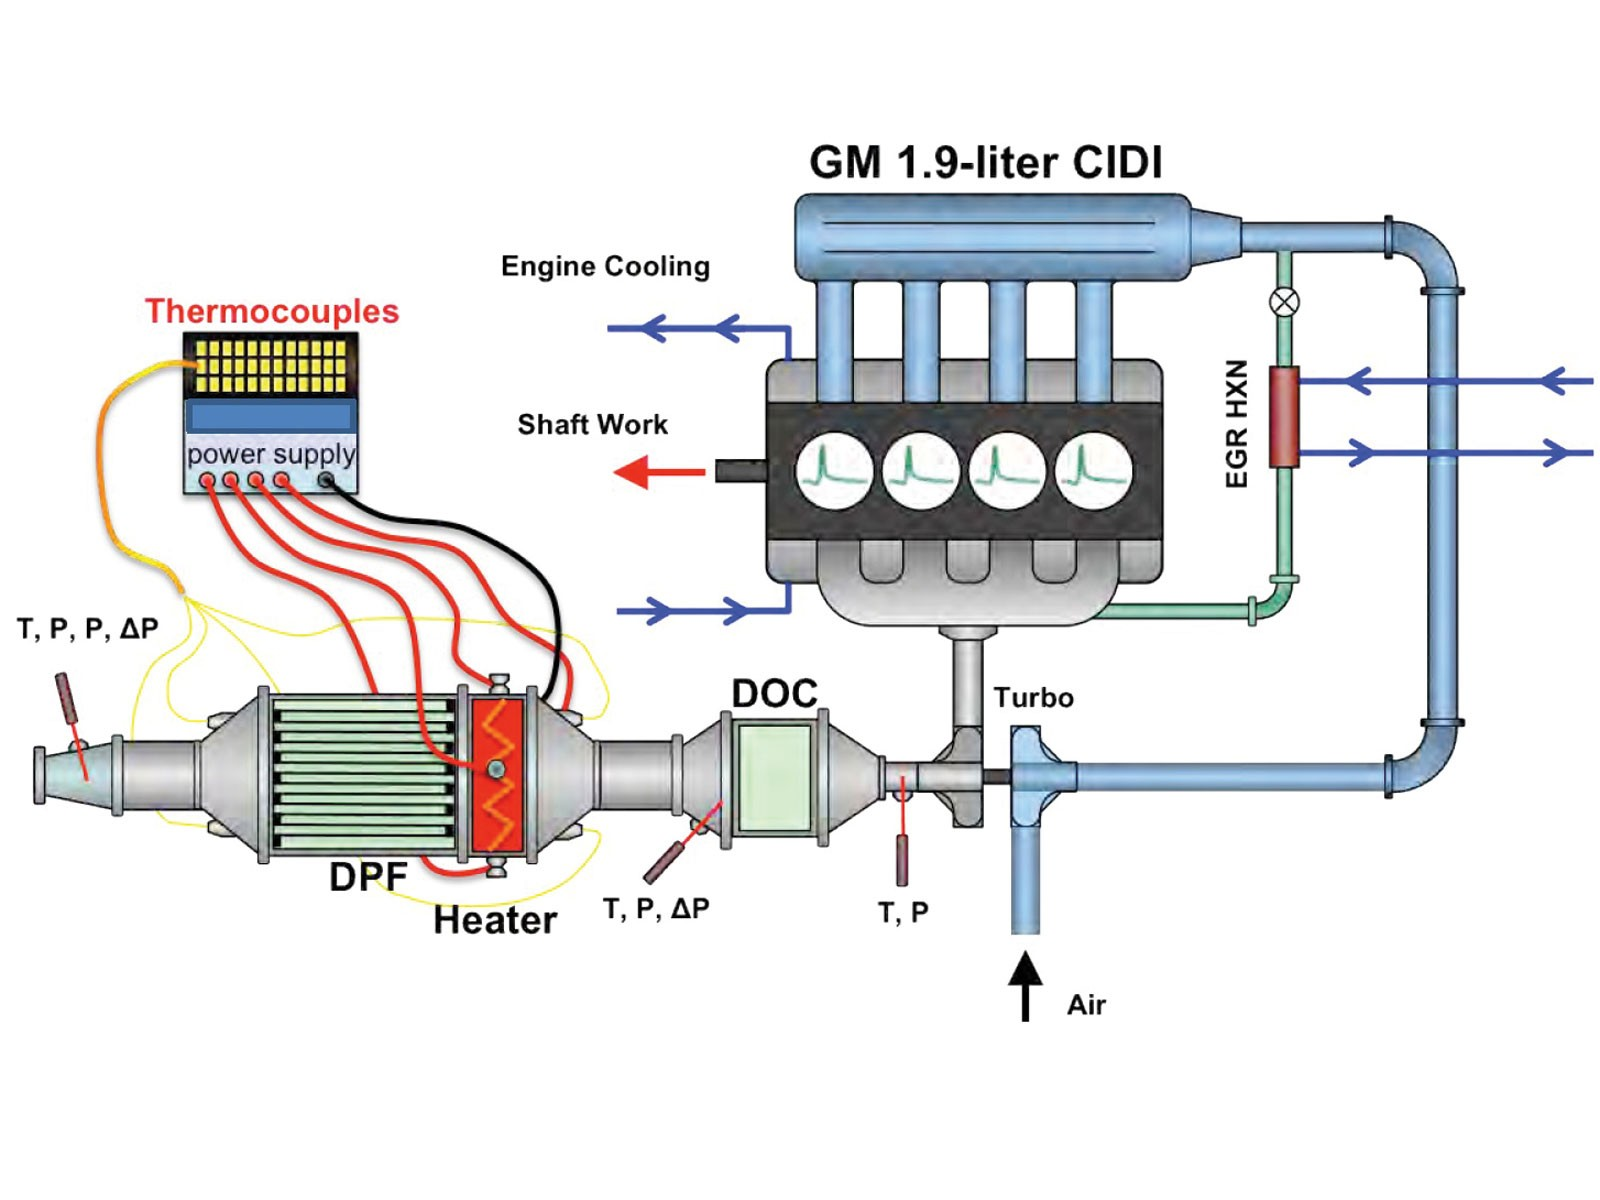 Diesel Engine Block Diagram Electric Generator Diagram Eee Electronics